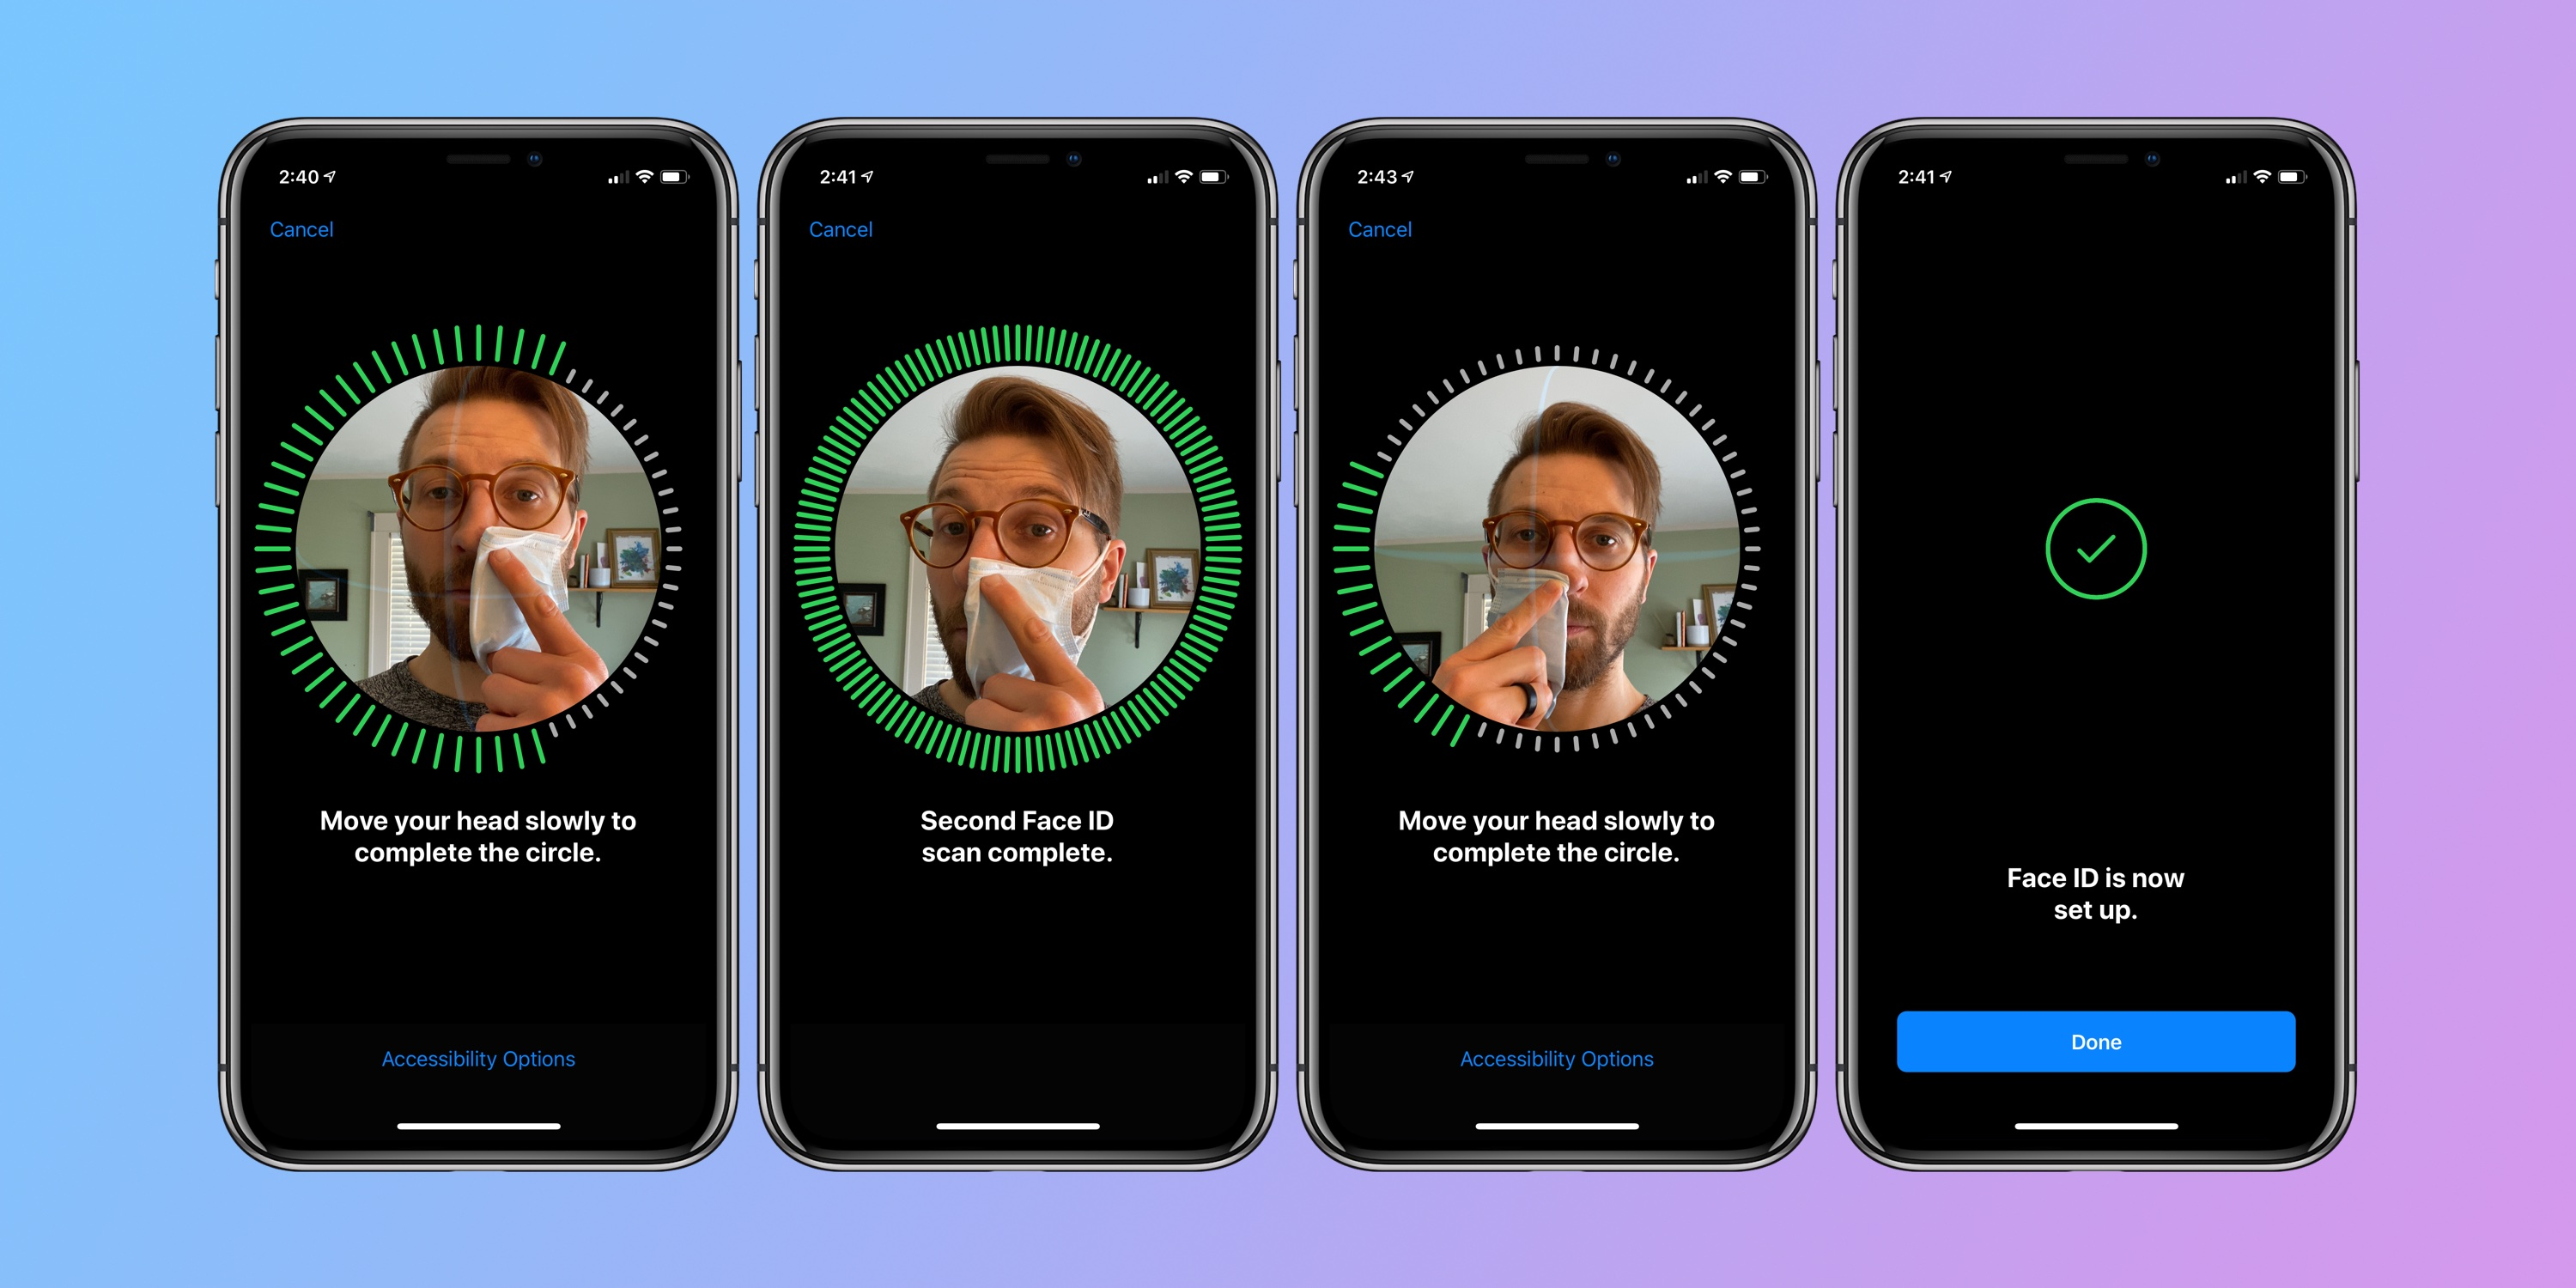 iPhone: How to use Face ID with a mask - 9to5Mac